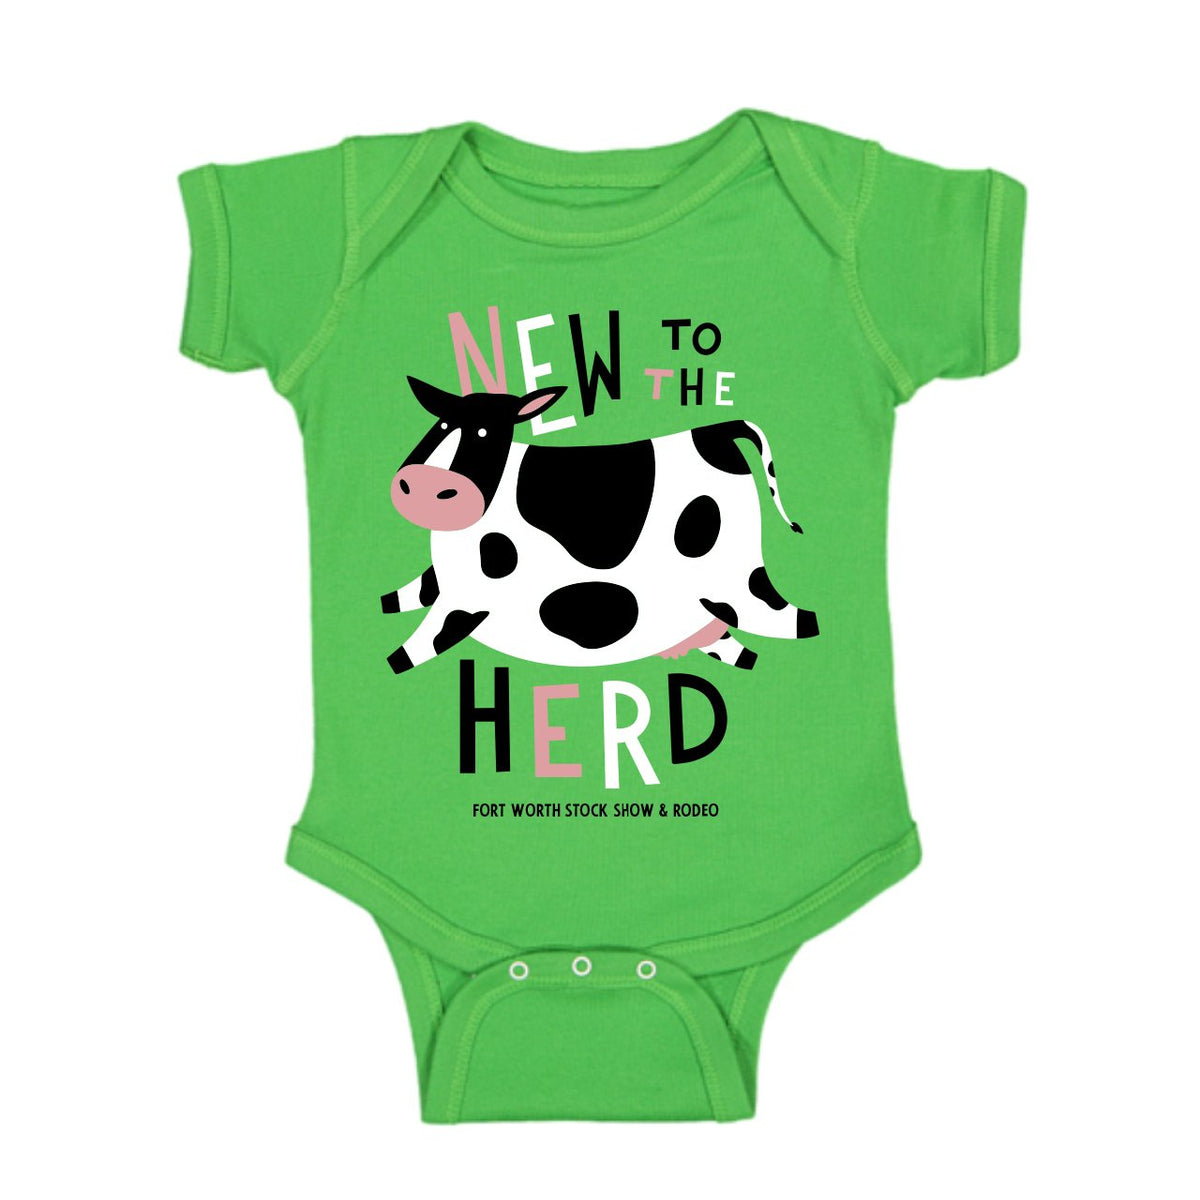 2020 FWSSR Youth Green New To The Herd Onesie